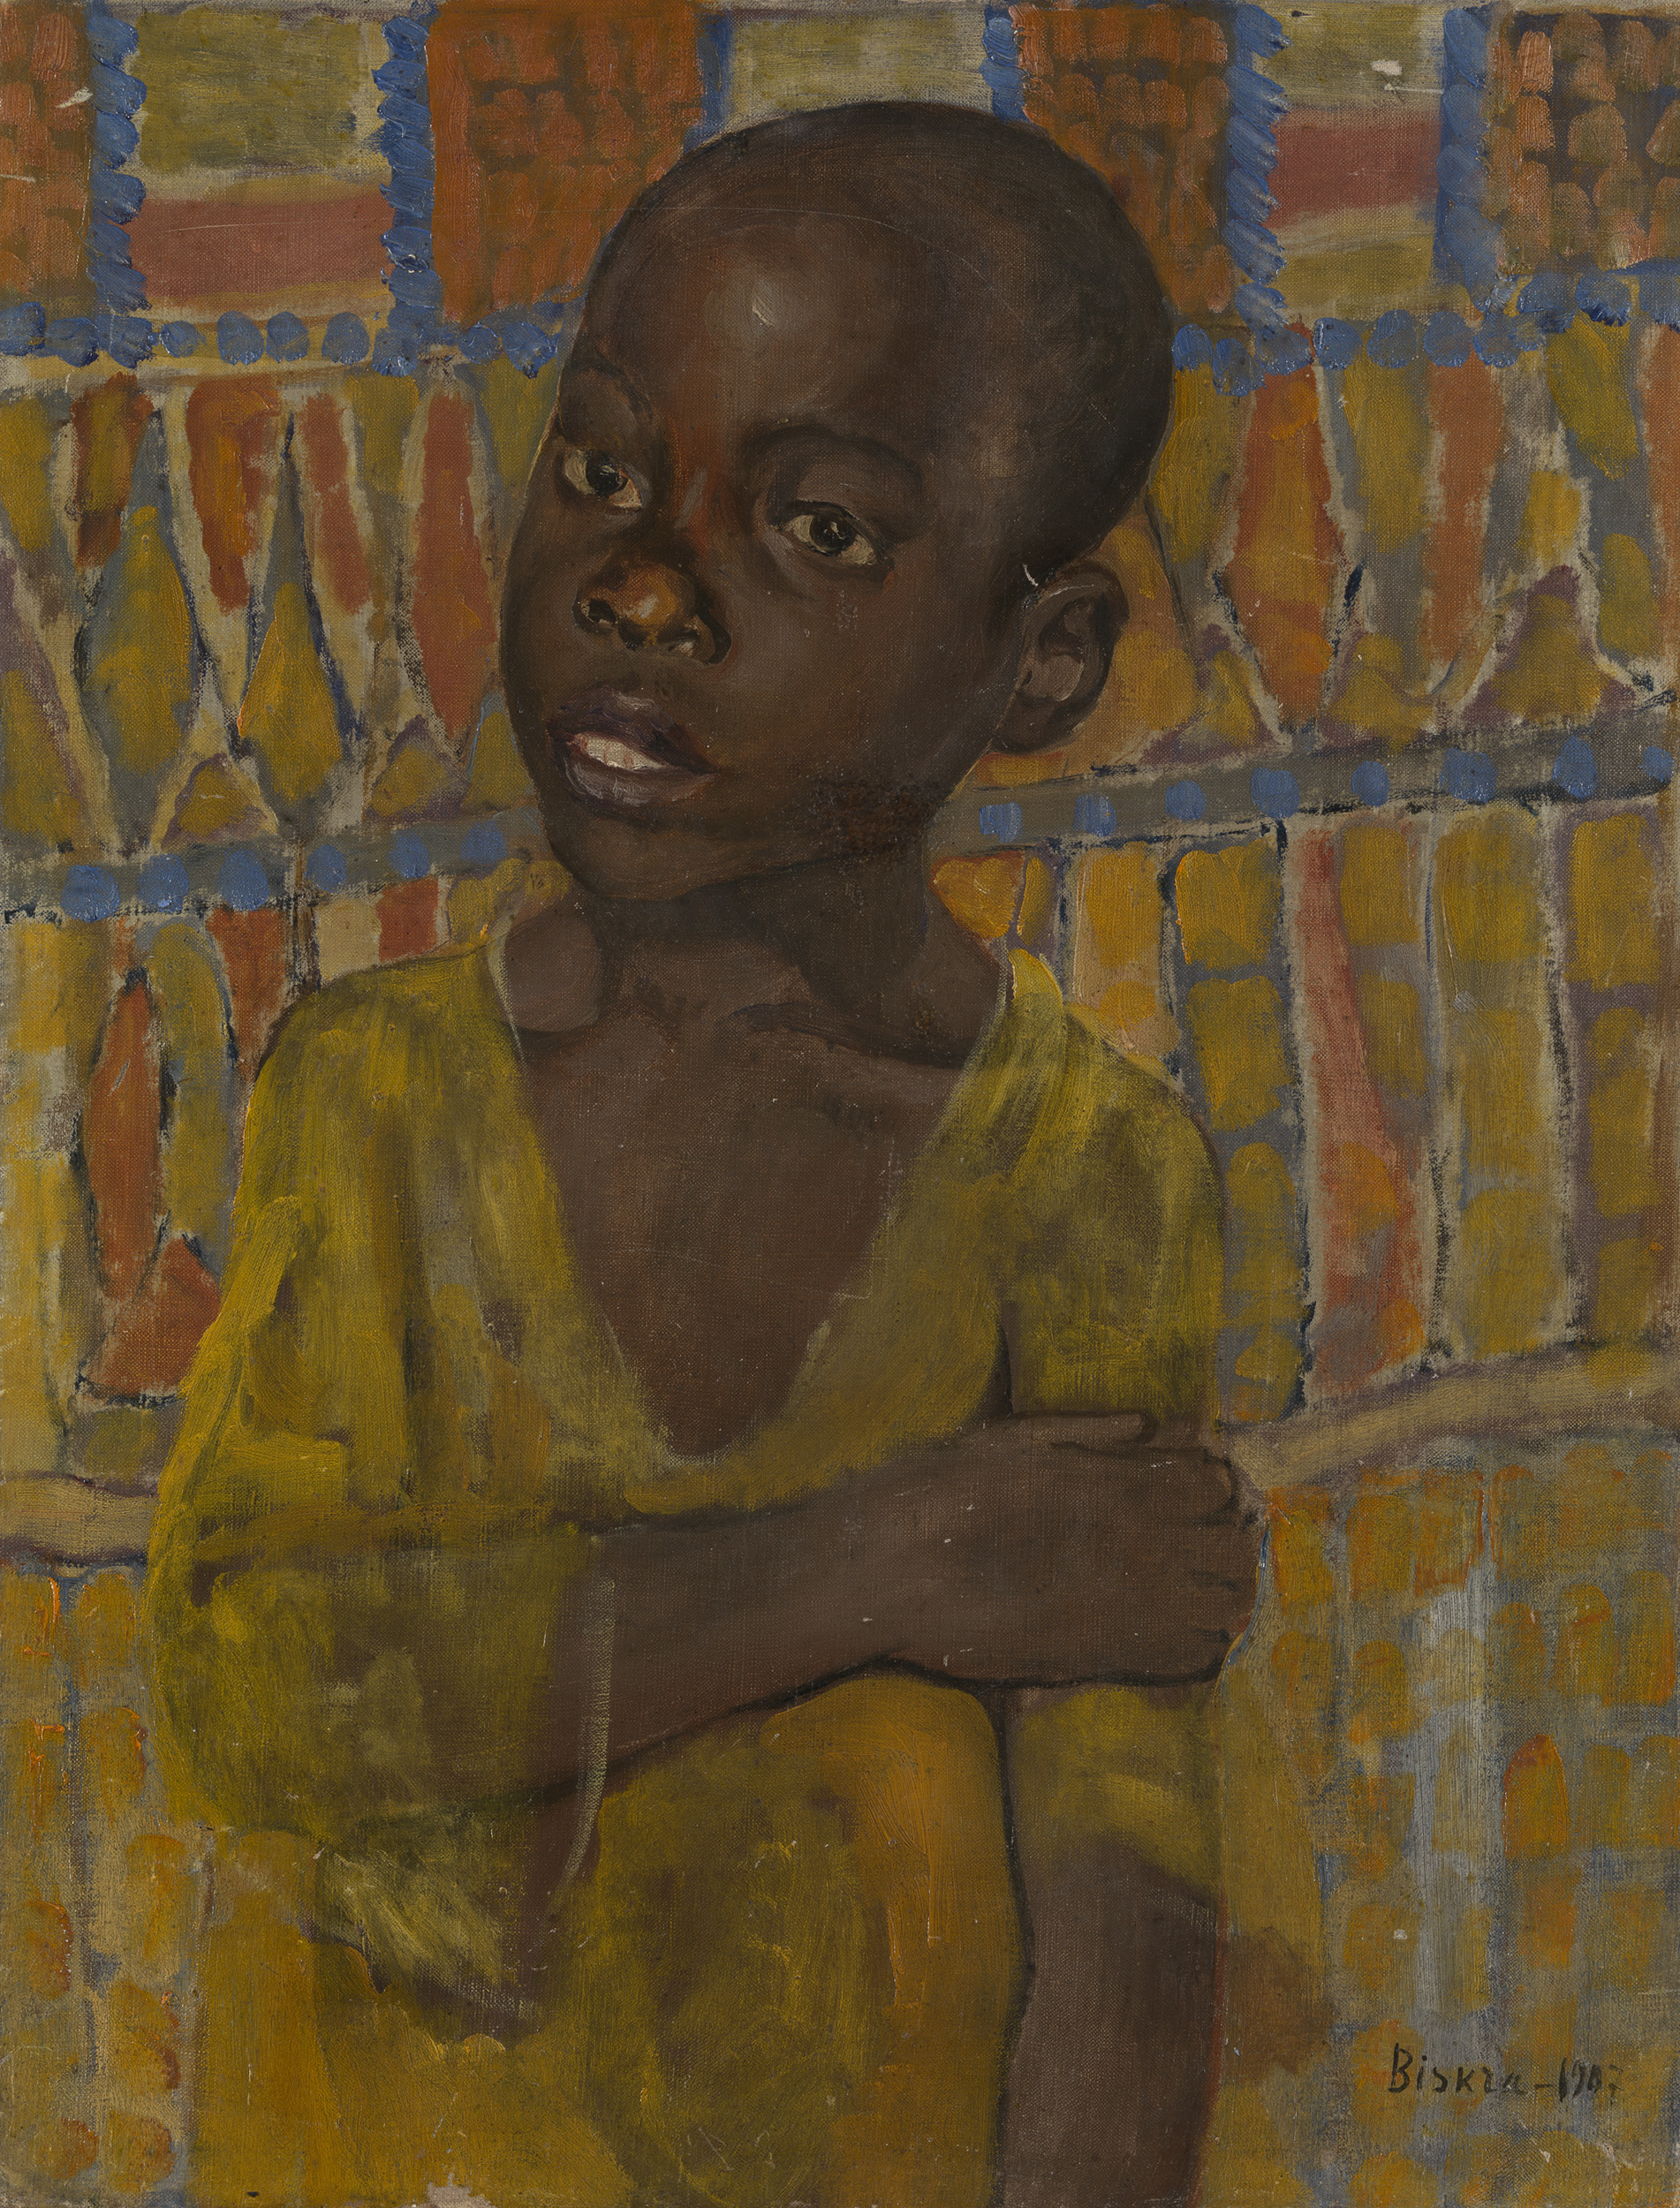 Lot 28 Kuzma Petrov-Vodkin, Portrait of an African Boy